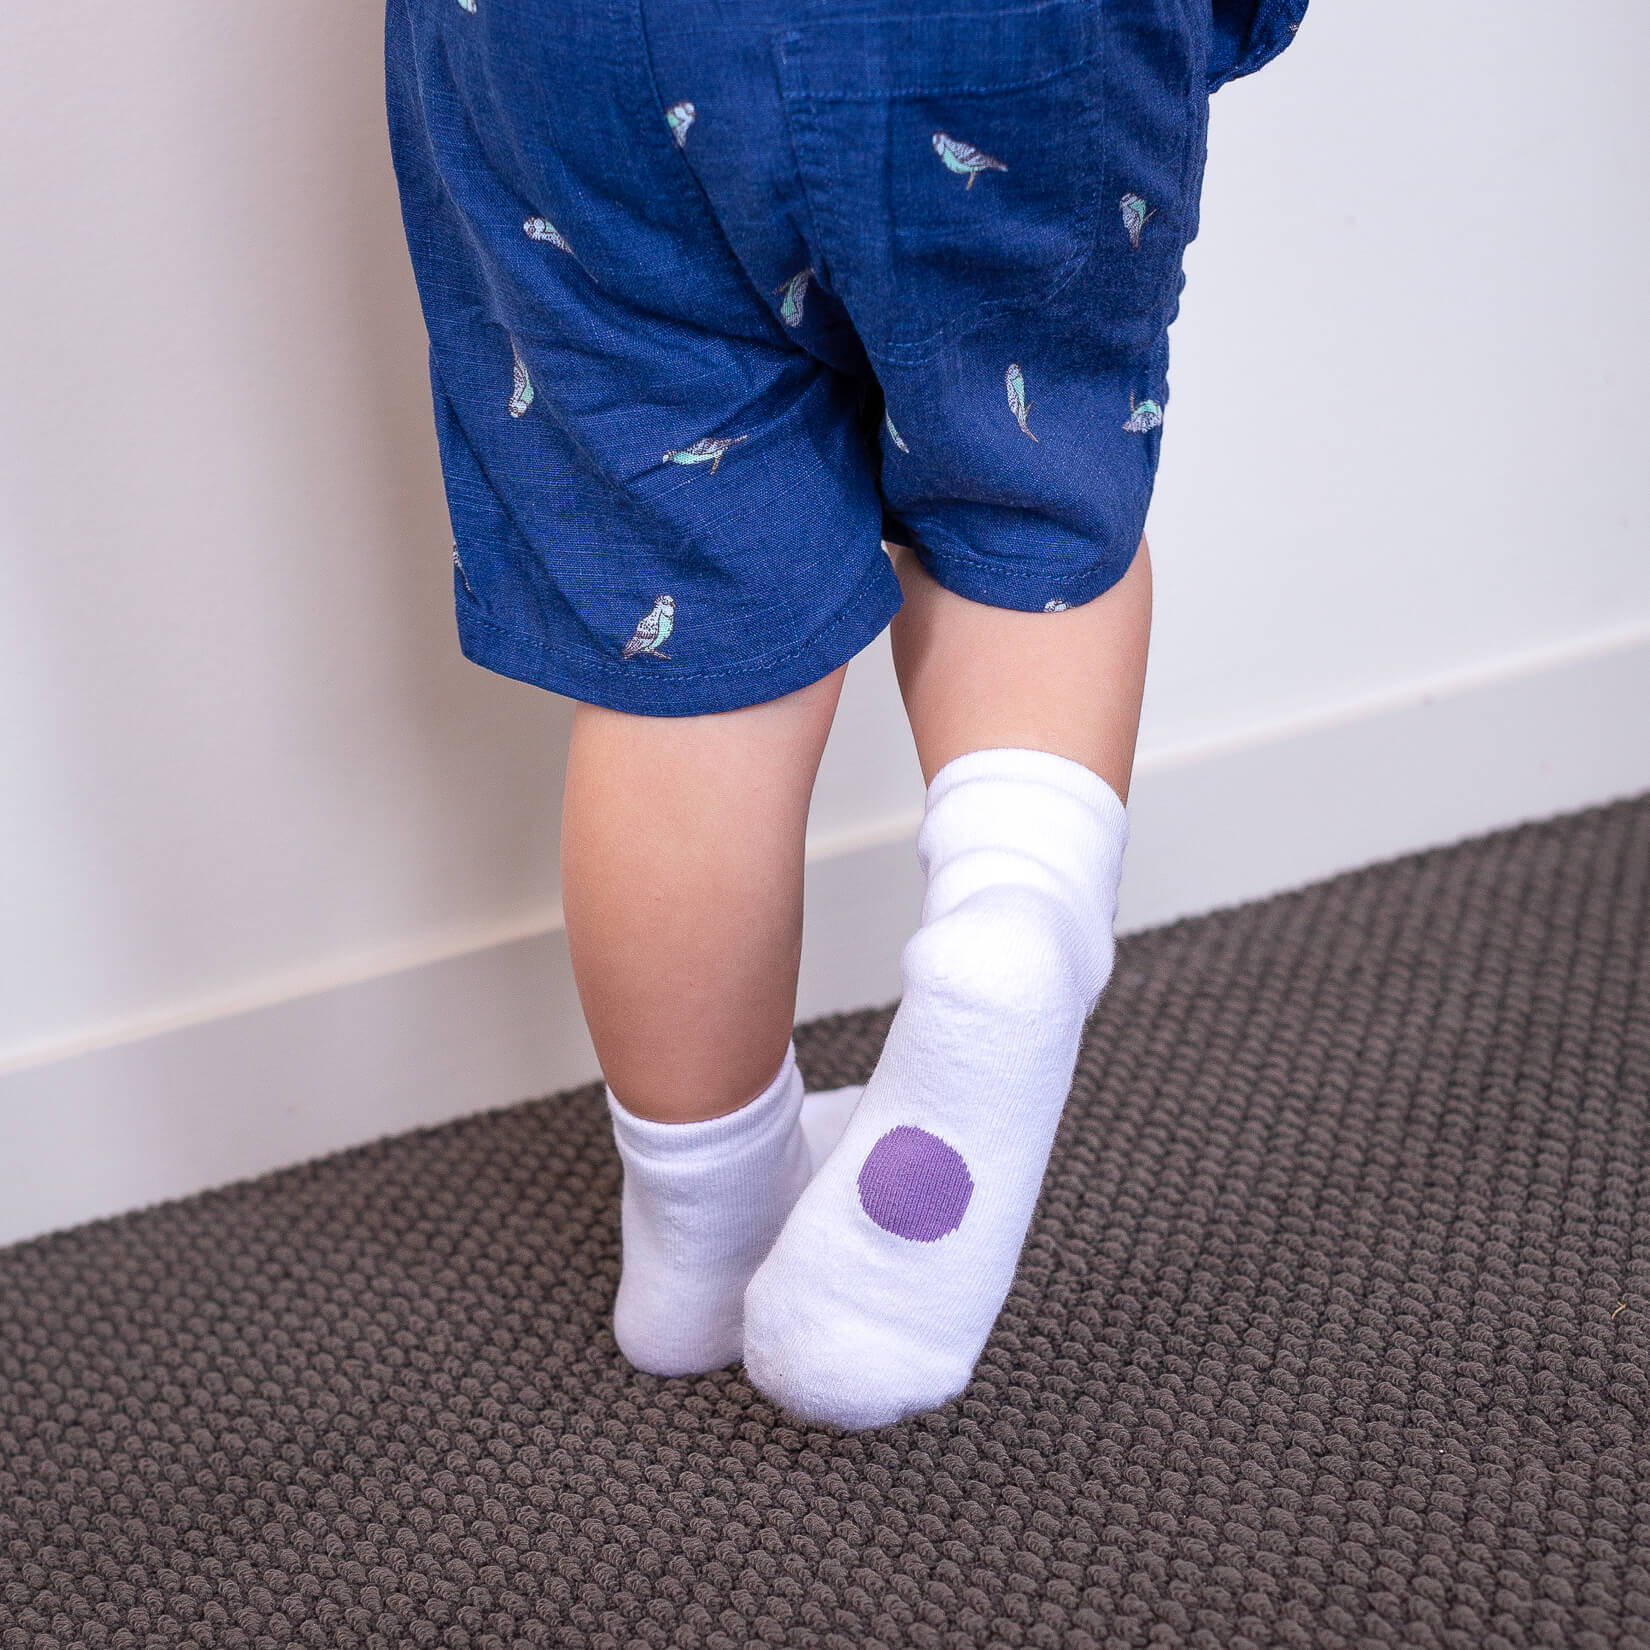 white socks with purple dots for 2-4 year olds